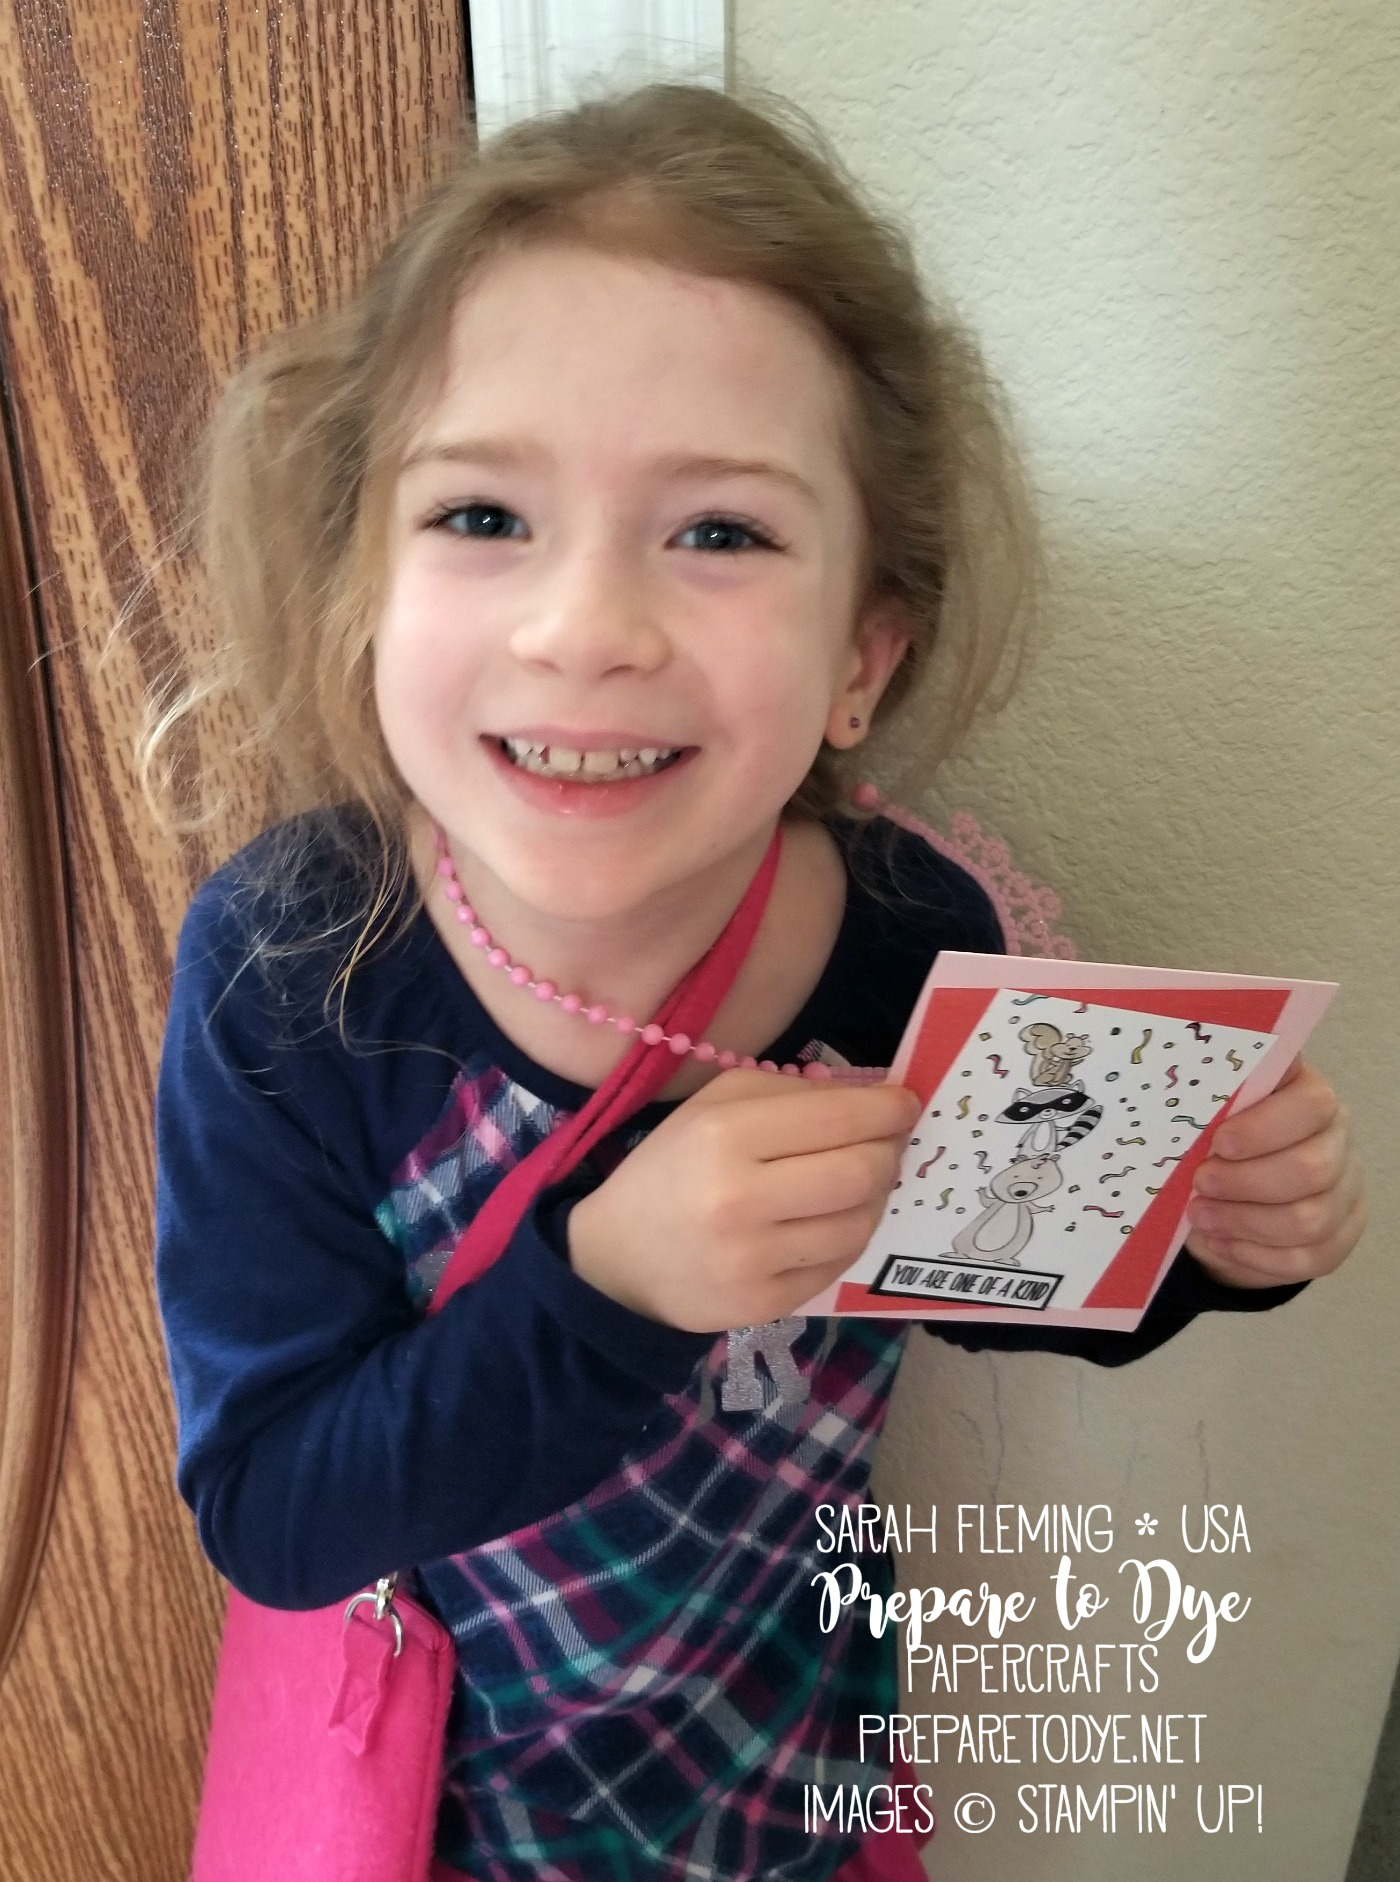 Random Act of Kindness Blog Hop - Stampin' Up! - Sarah Fleming - Prepare to Dye Papercrafts